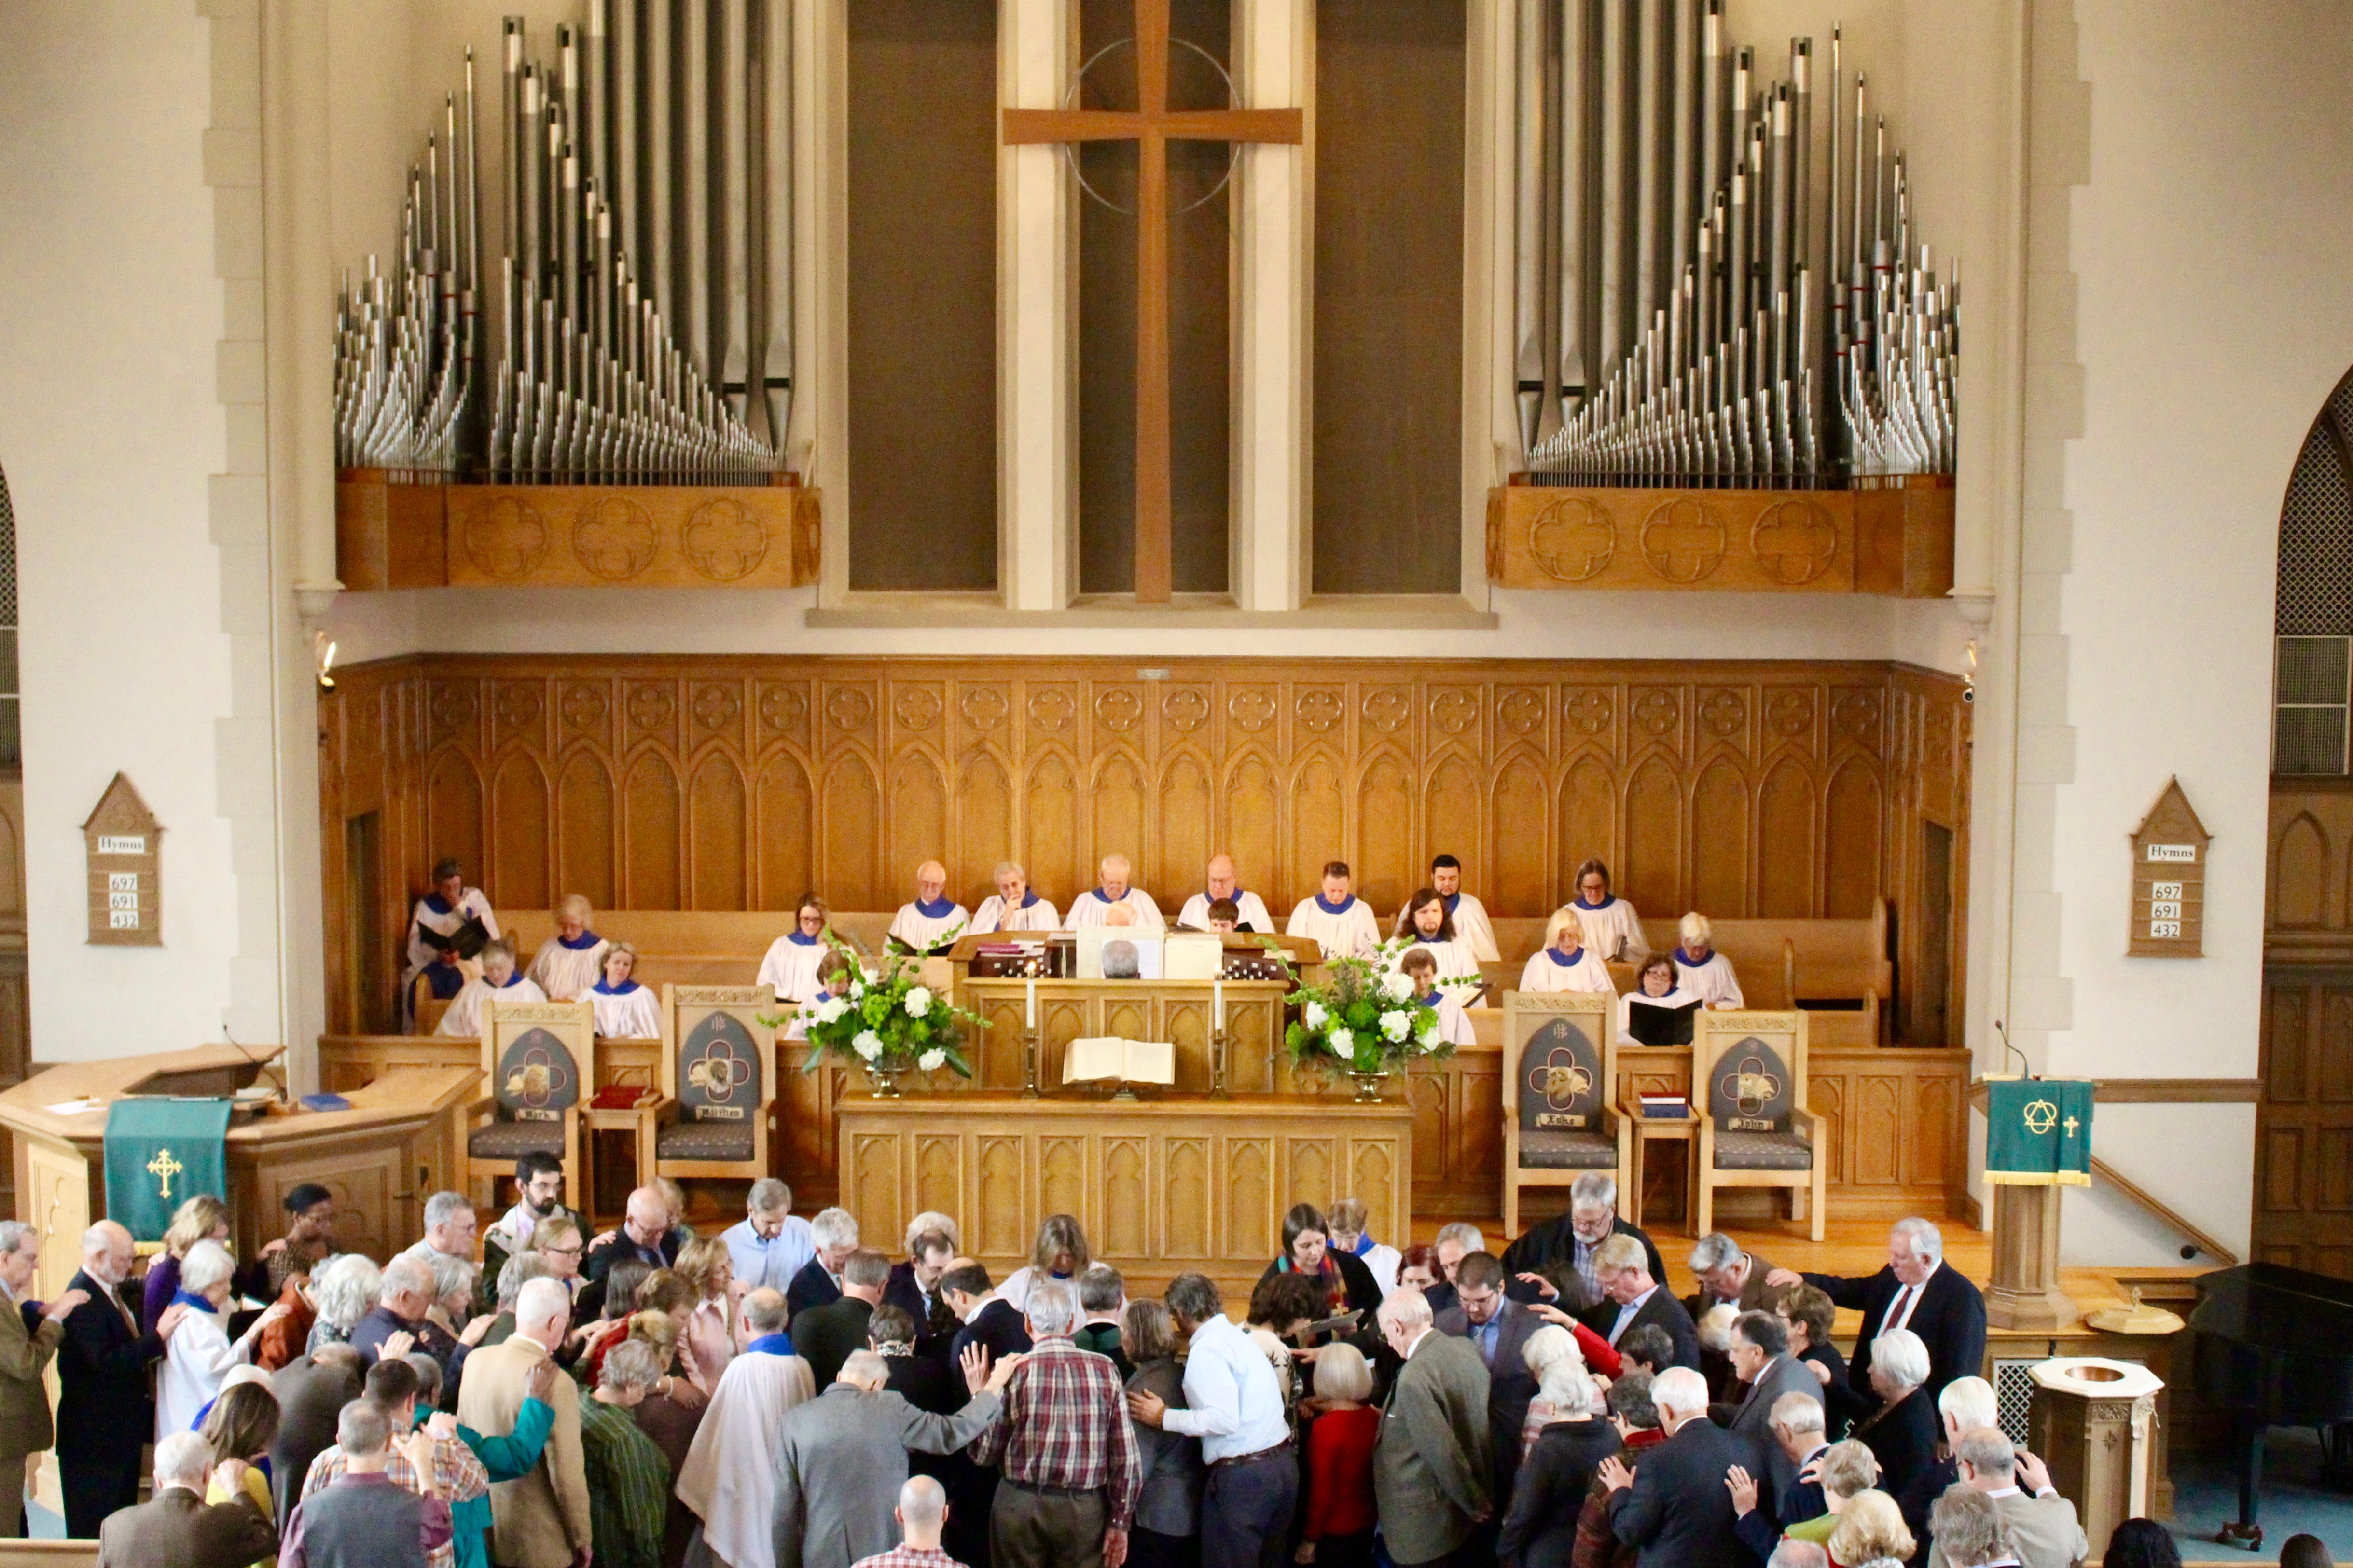 The Prayer of Ordination and Installation